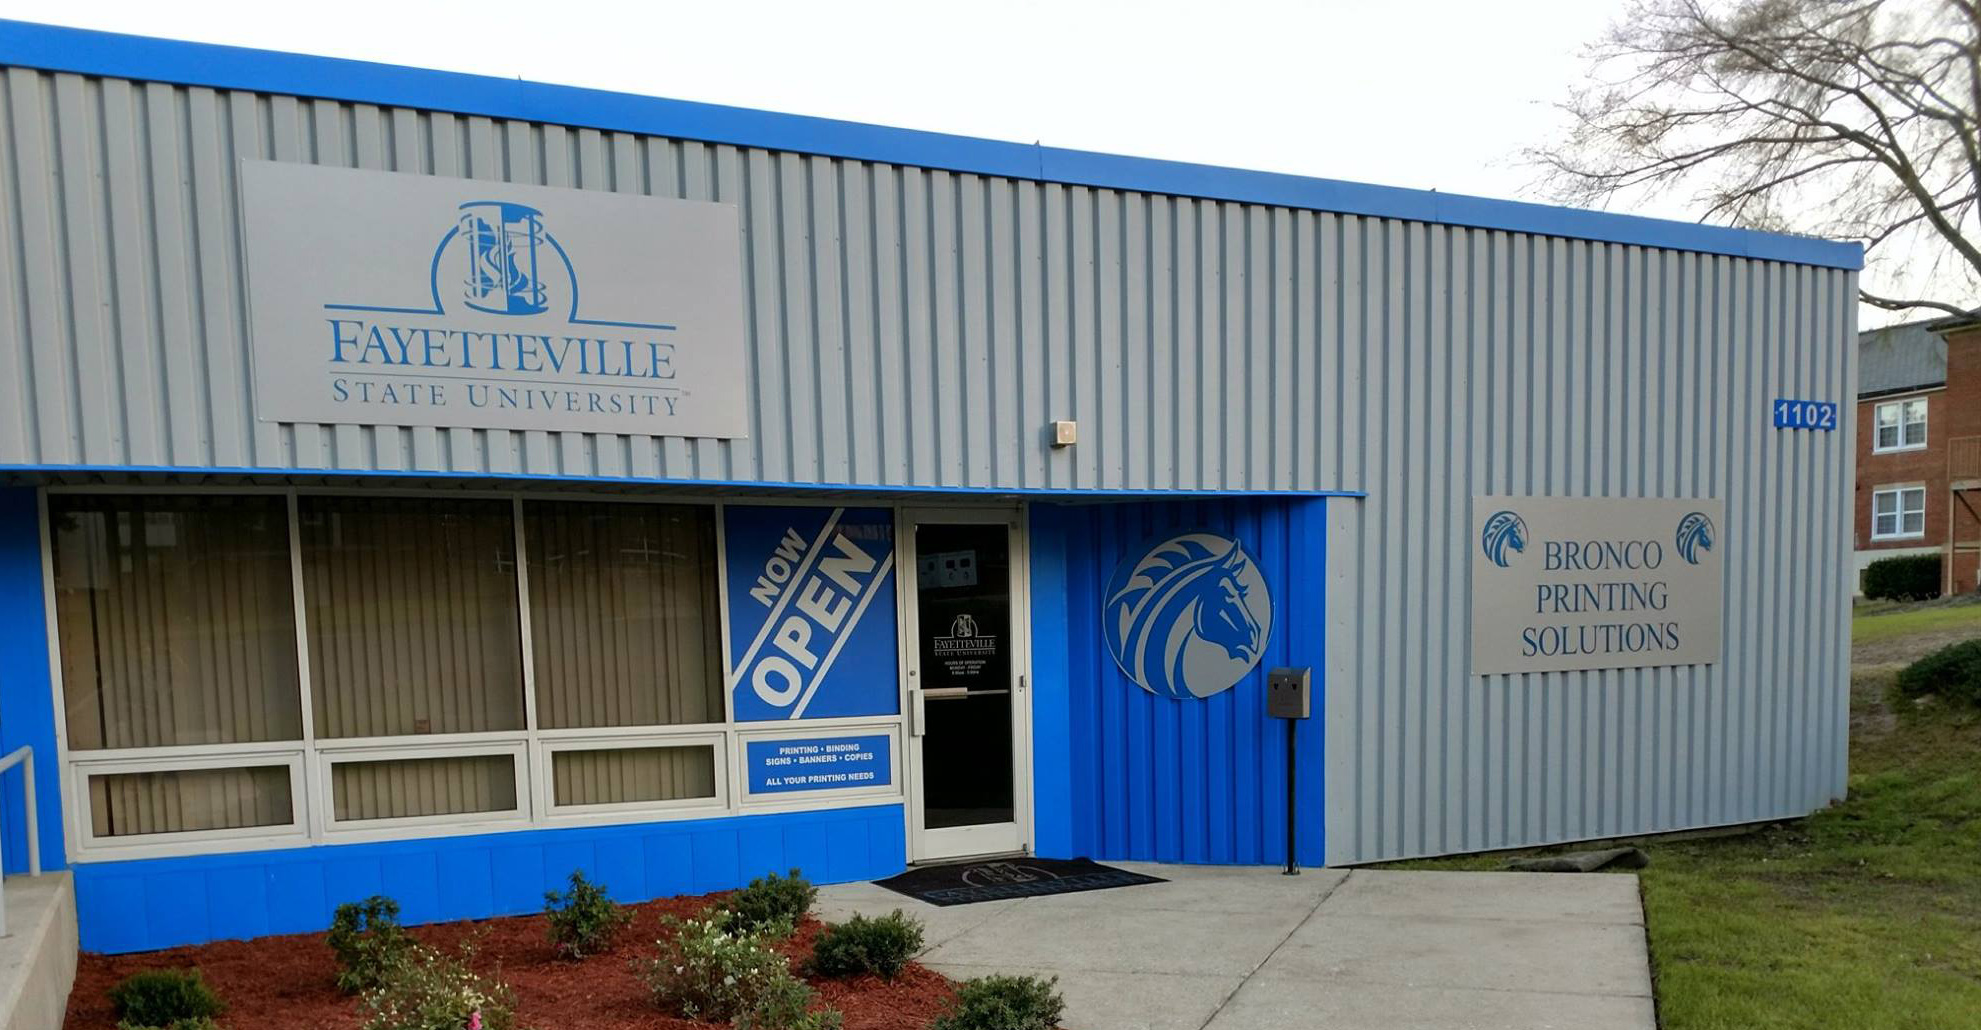 Fayetteville State University Bronco Printing Solutions